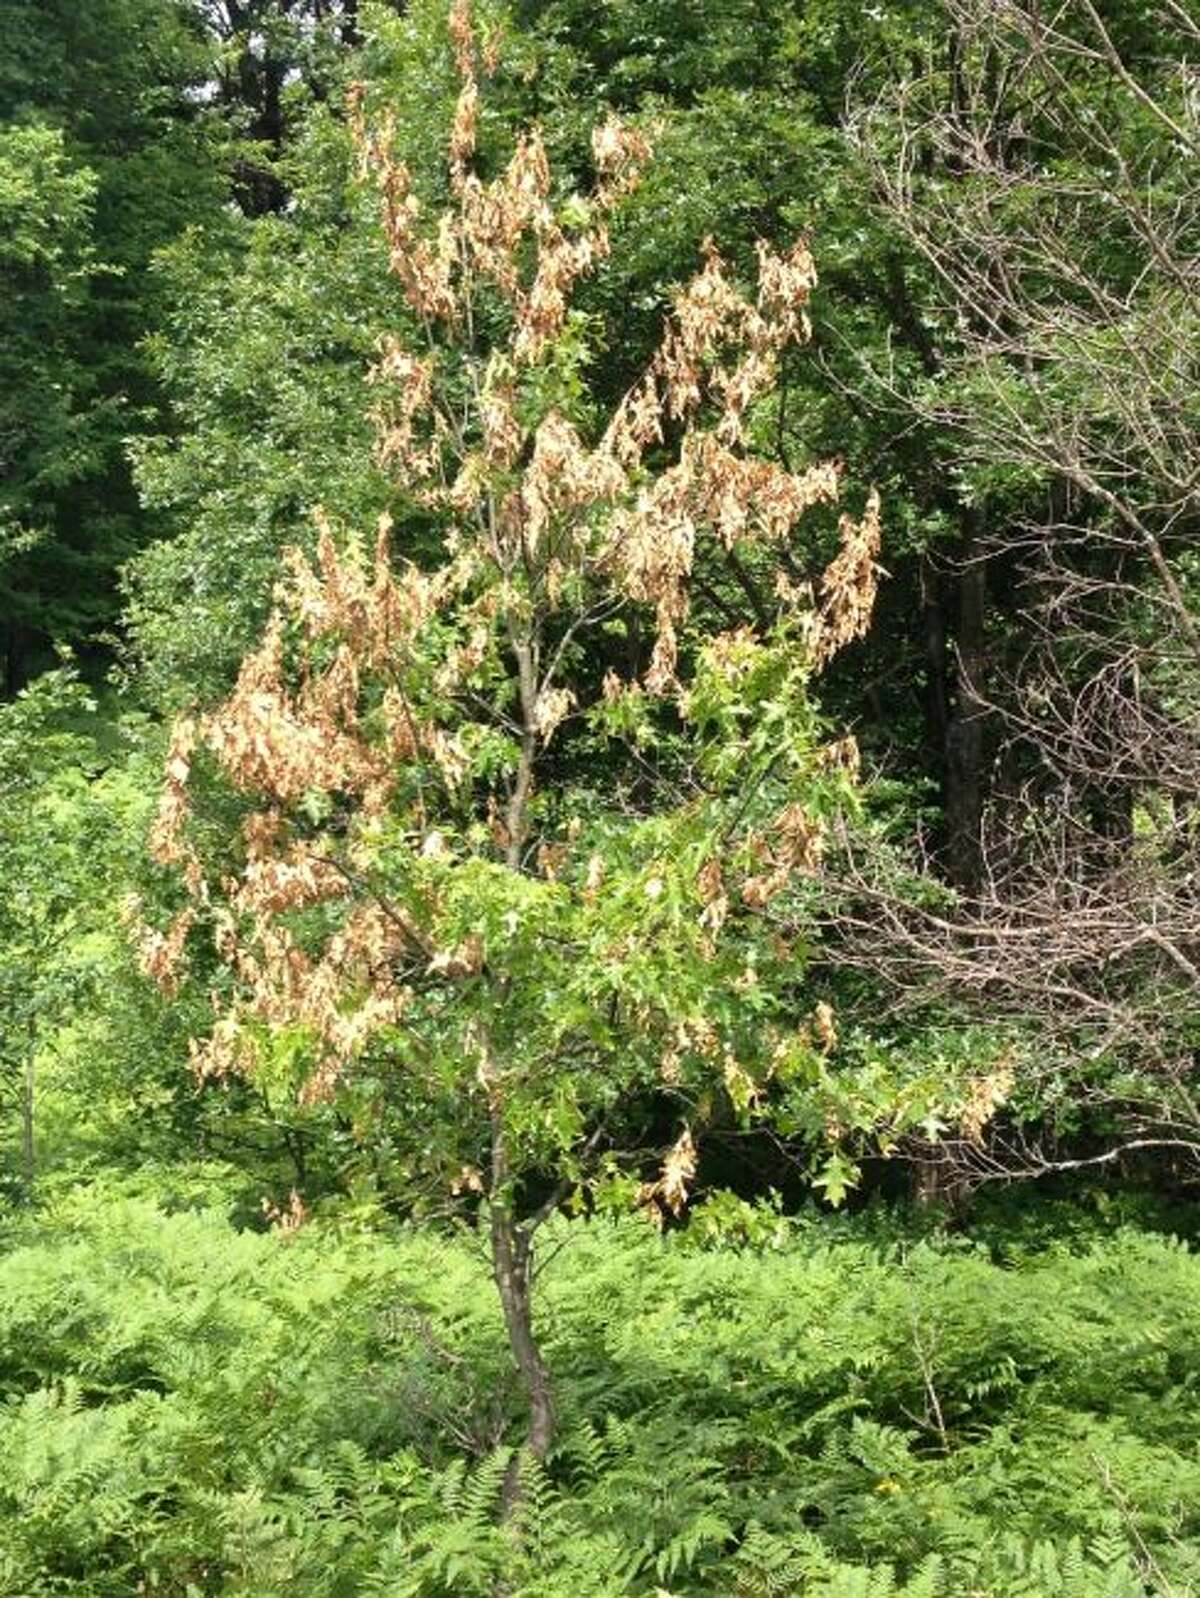 A red oak tree near Cadillac displays an active oak wilt infection. (Courtesy photo/Larry Czelusta, Wexford CD)